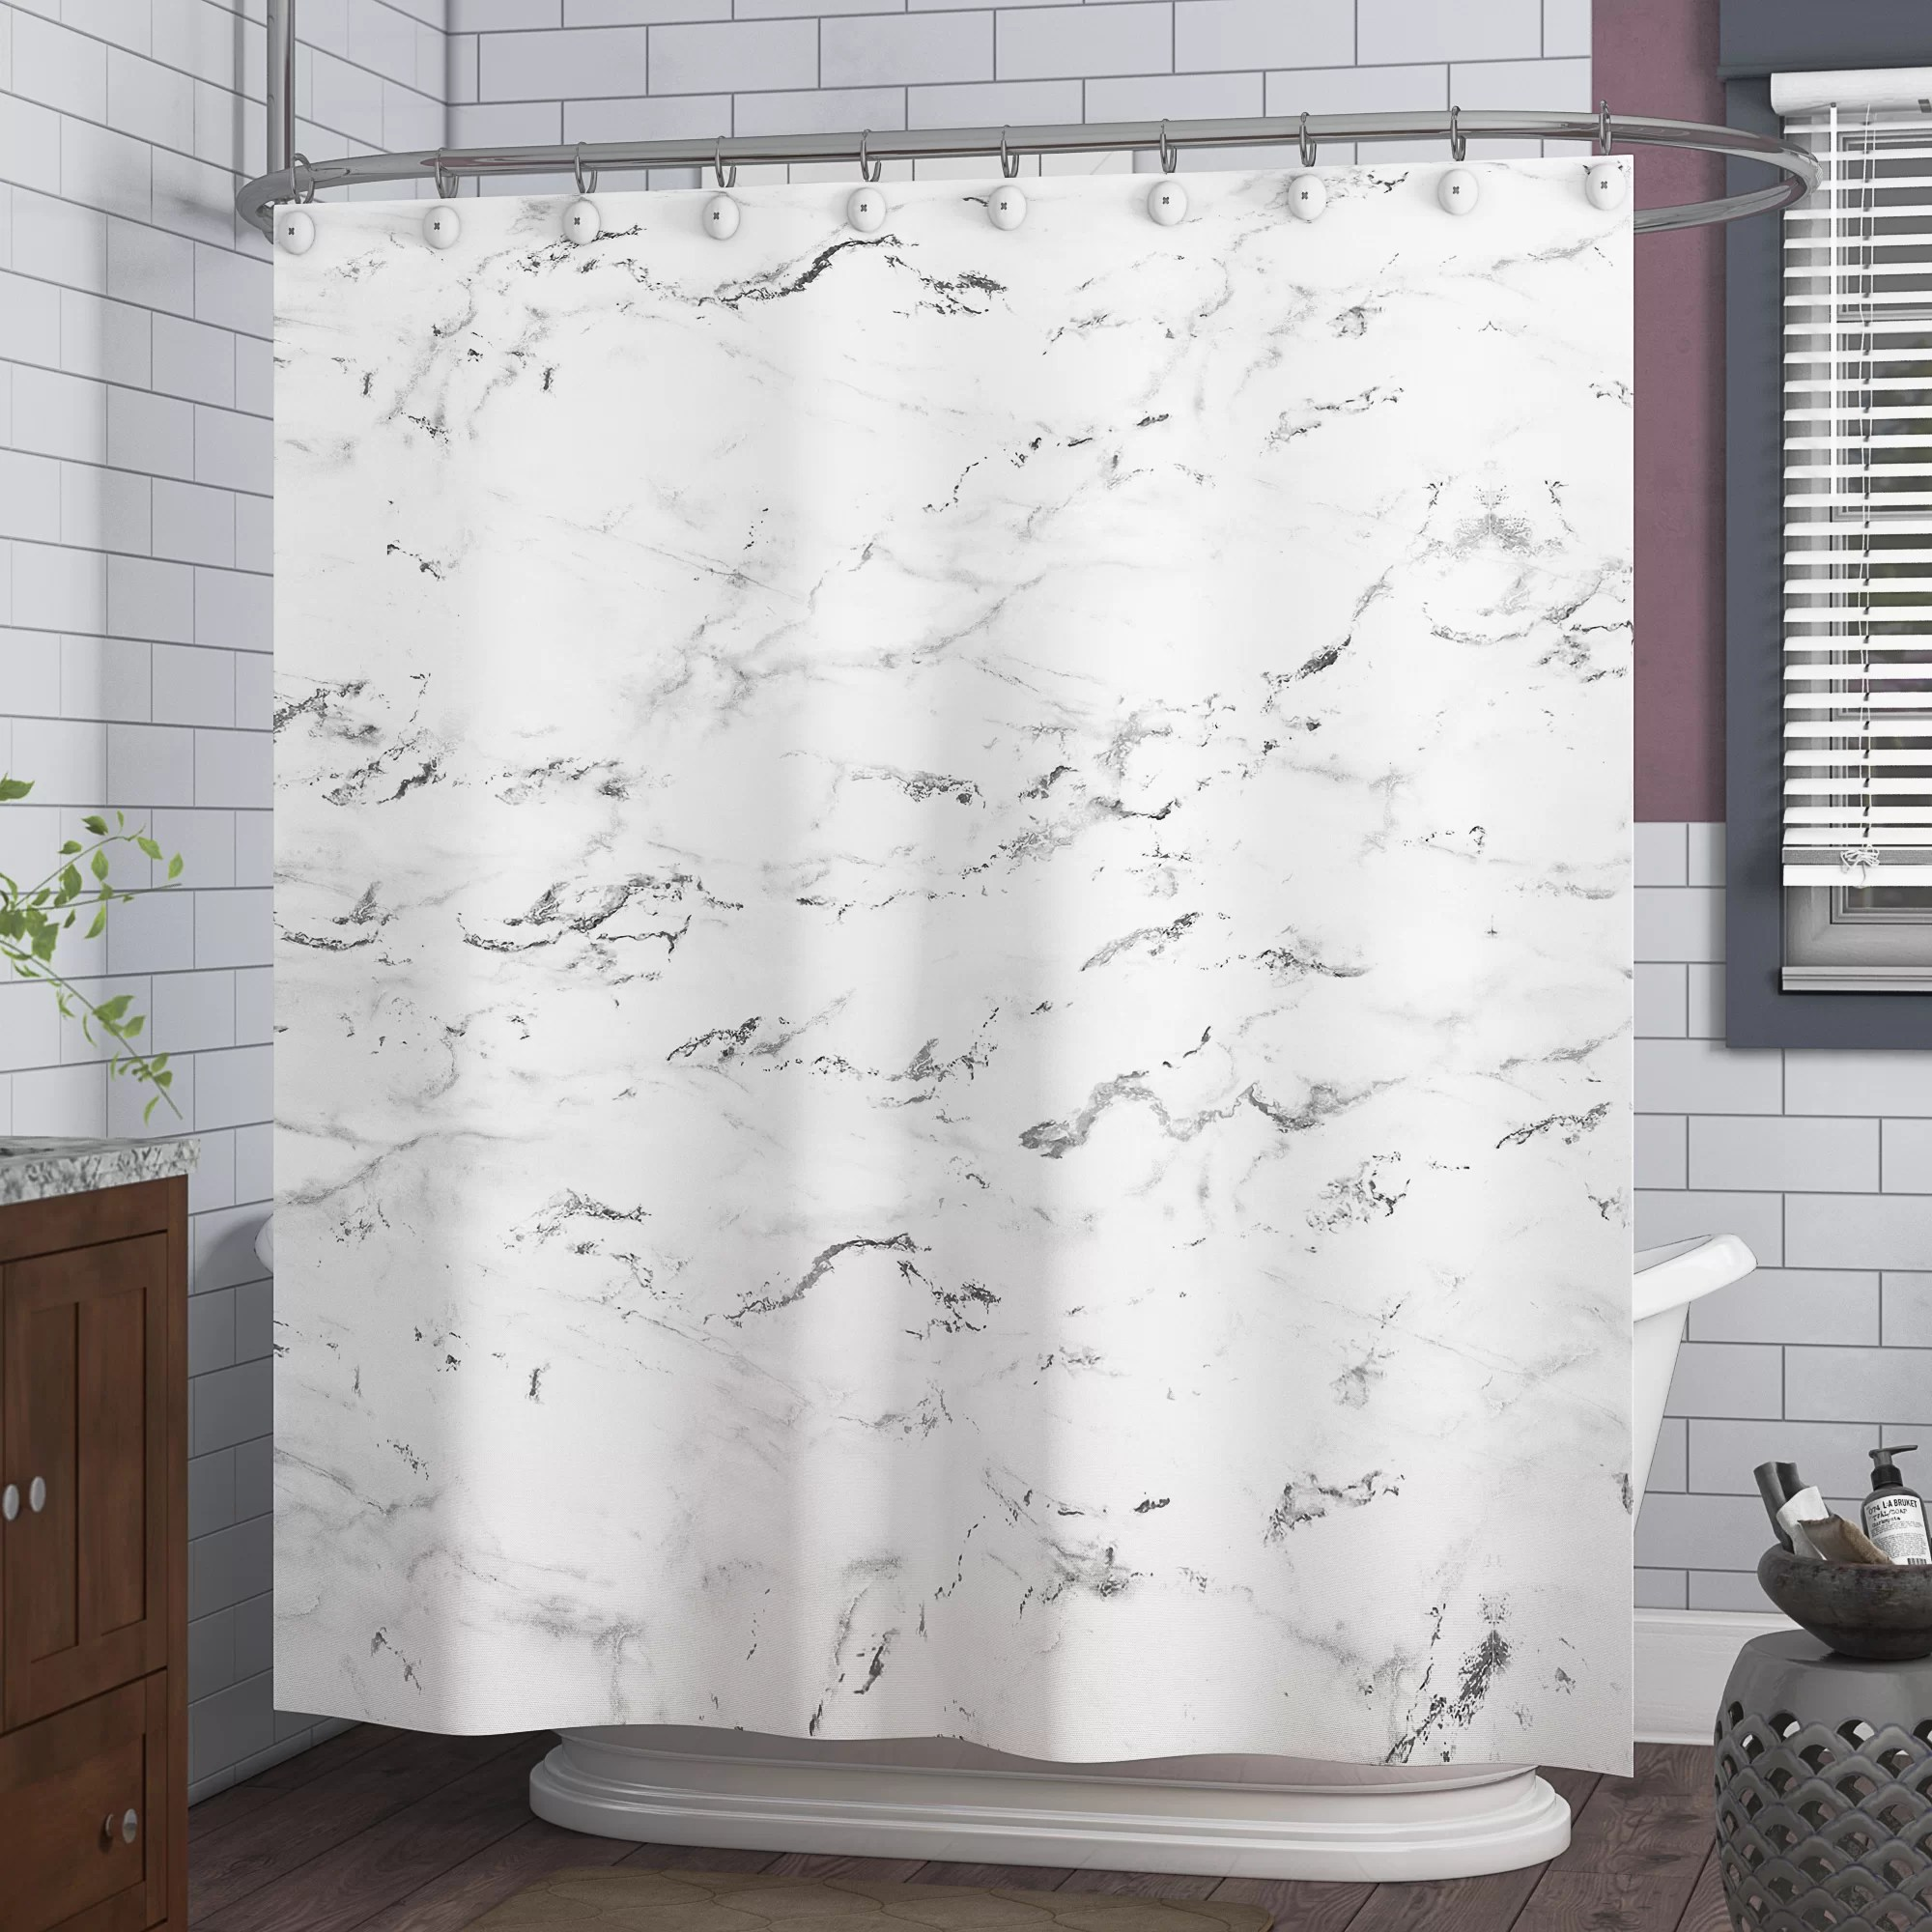 Shower Curtains Art Marble Shower Curtain Set Bathroom Waterproof Polyester Curtains Bath Mat Icjoinville Com Br